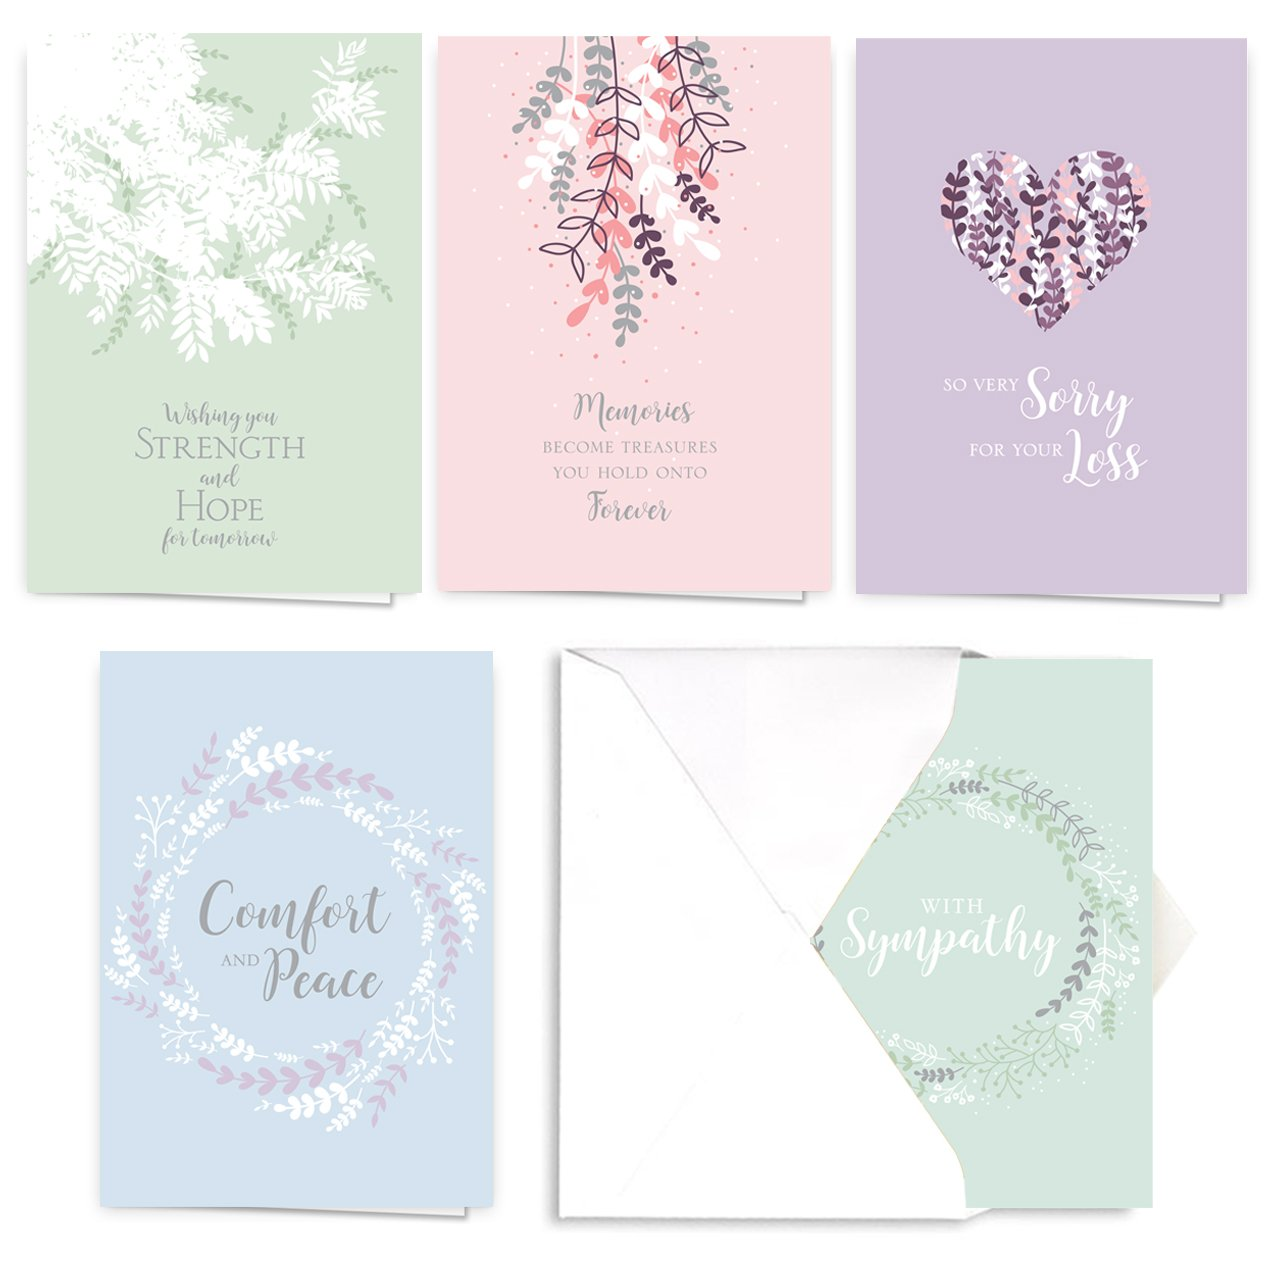 Expressions of Sympathy Assortment Card Pack - Set of 25, 5 designs - 5 cards per design, 5'' x 7''. Verse Sentiments inside. Made in the USA. Blank white envelopes included.